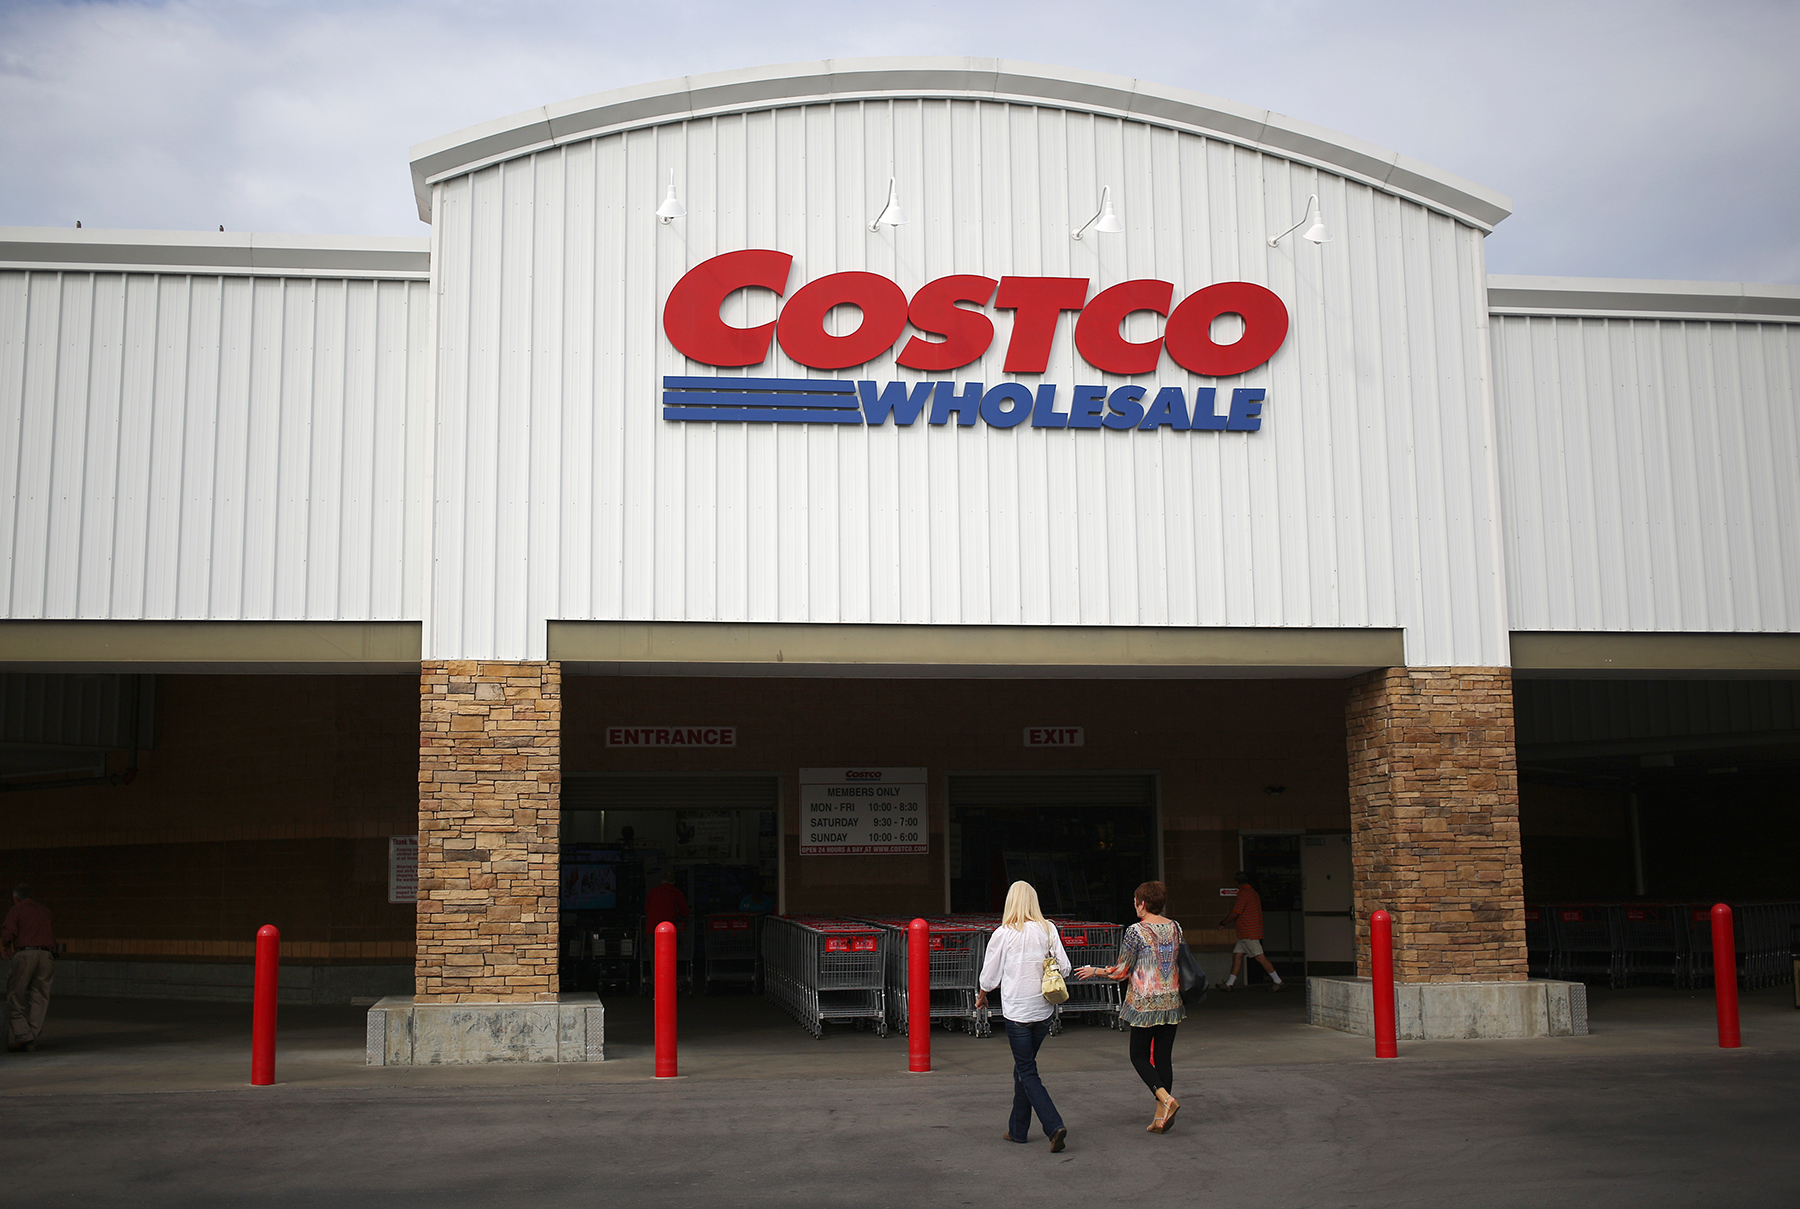 costco-entrance